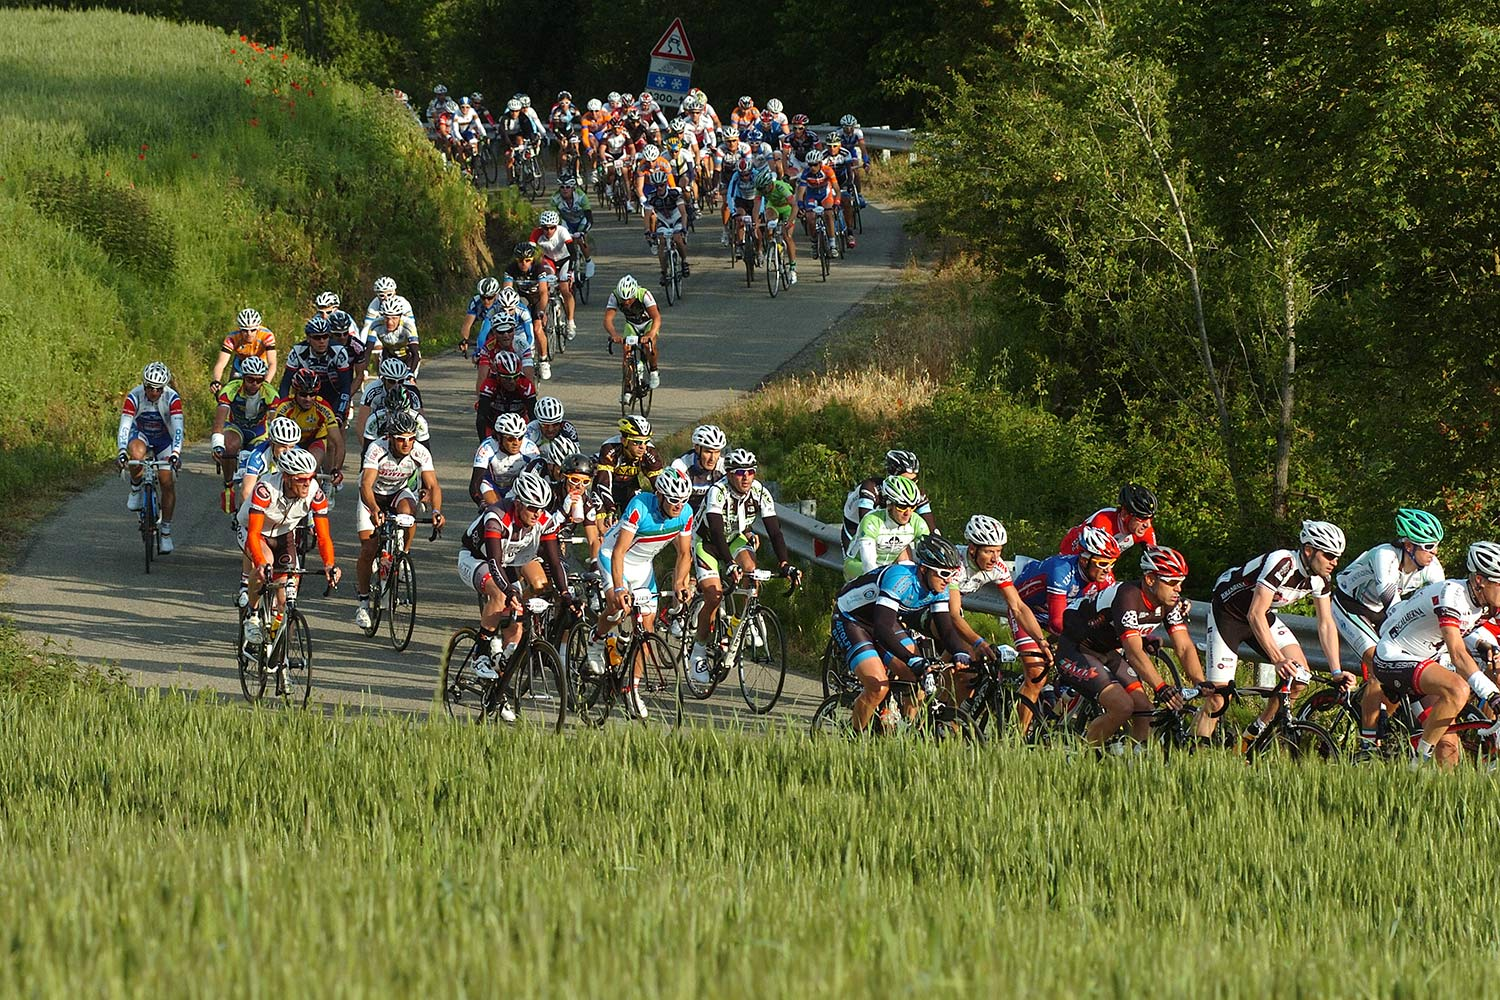 Gran Fondo Nove Colli cycling race in Italy